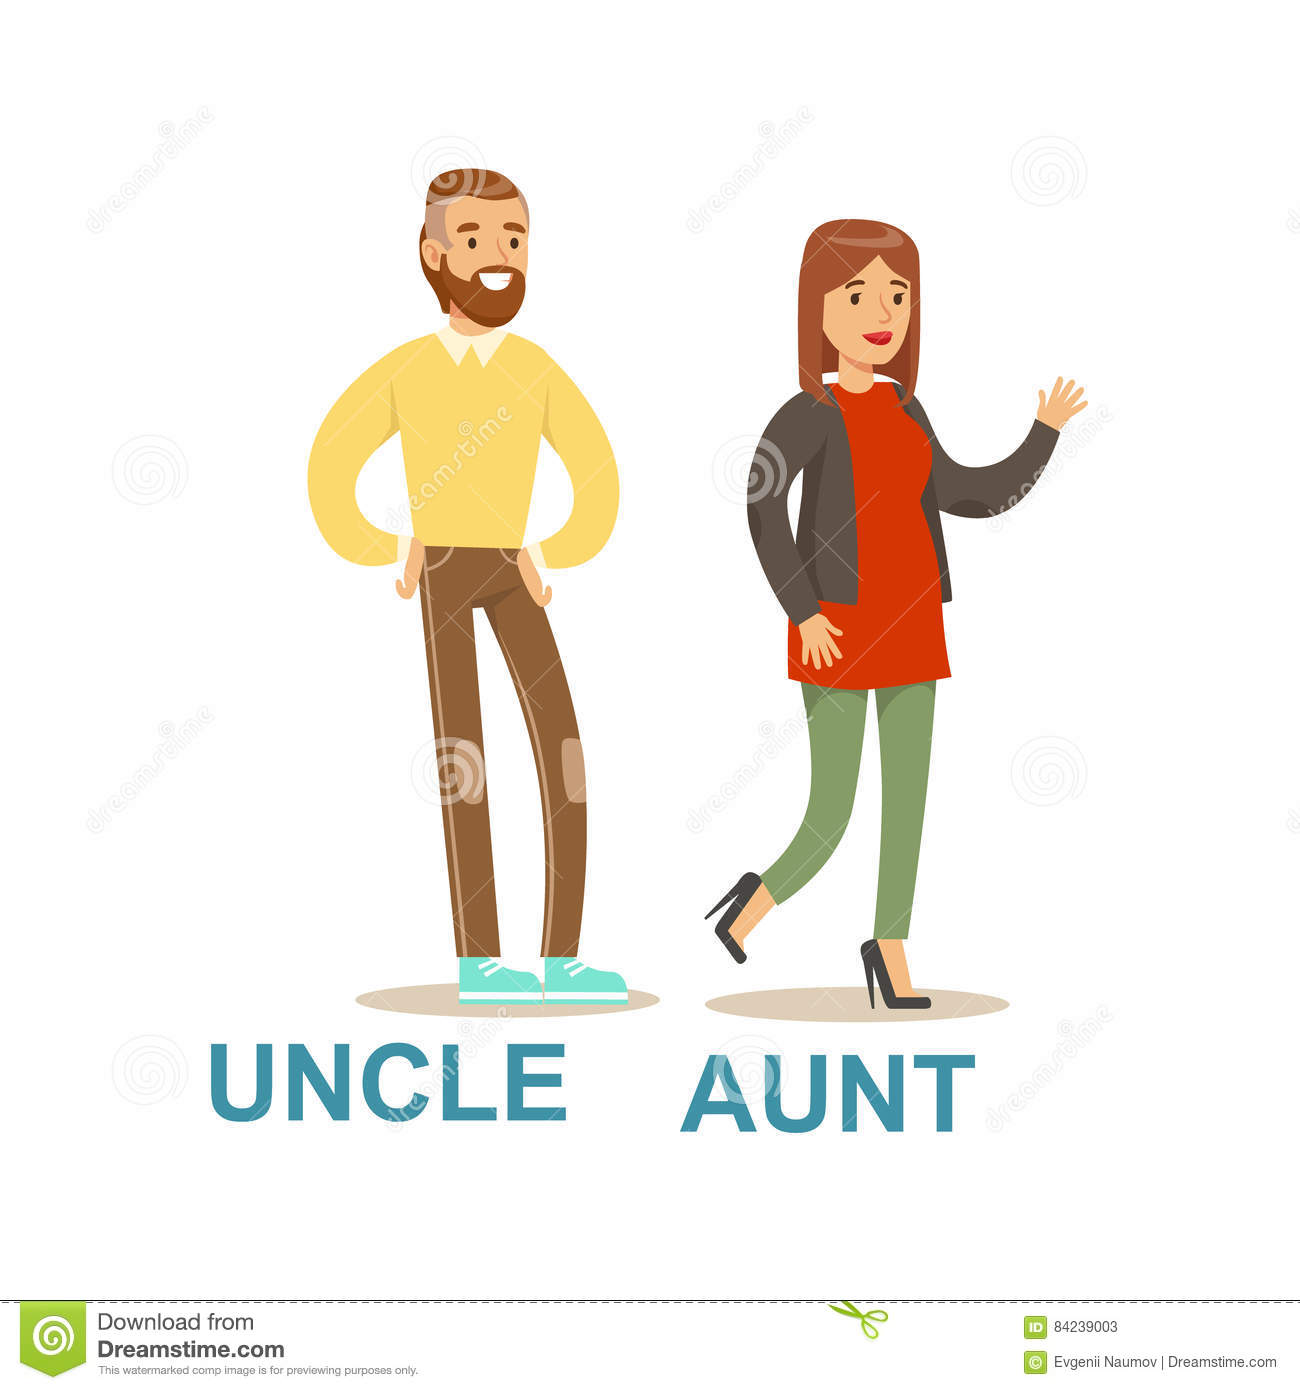 aunt and uncle vector illustration cartoondealer com wedding clipart black and white download wedding clipart black and white free download